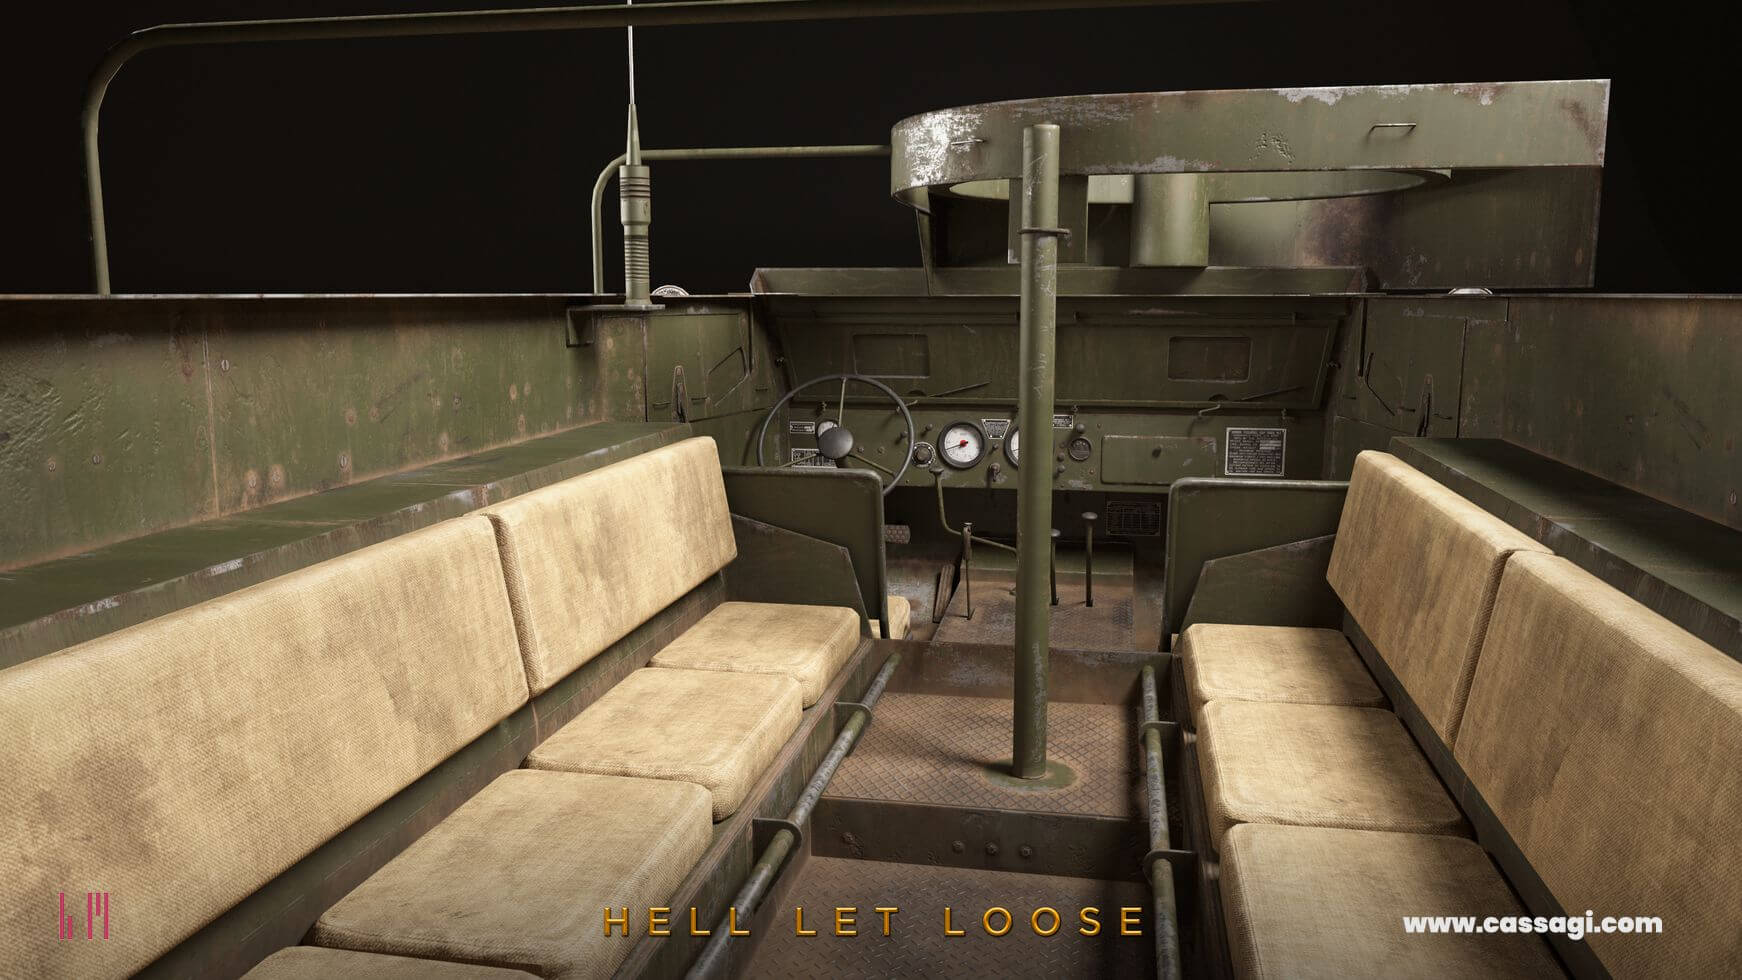 hell let loose M5A1 Stuart in game model interior